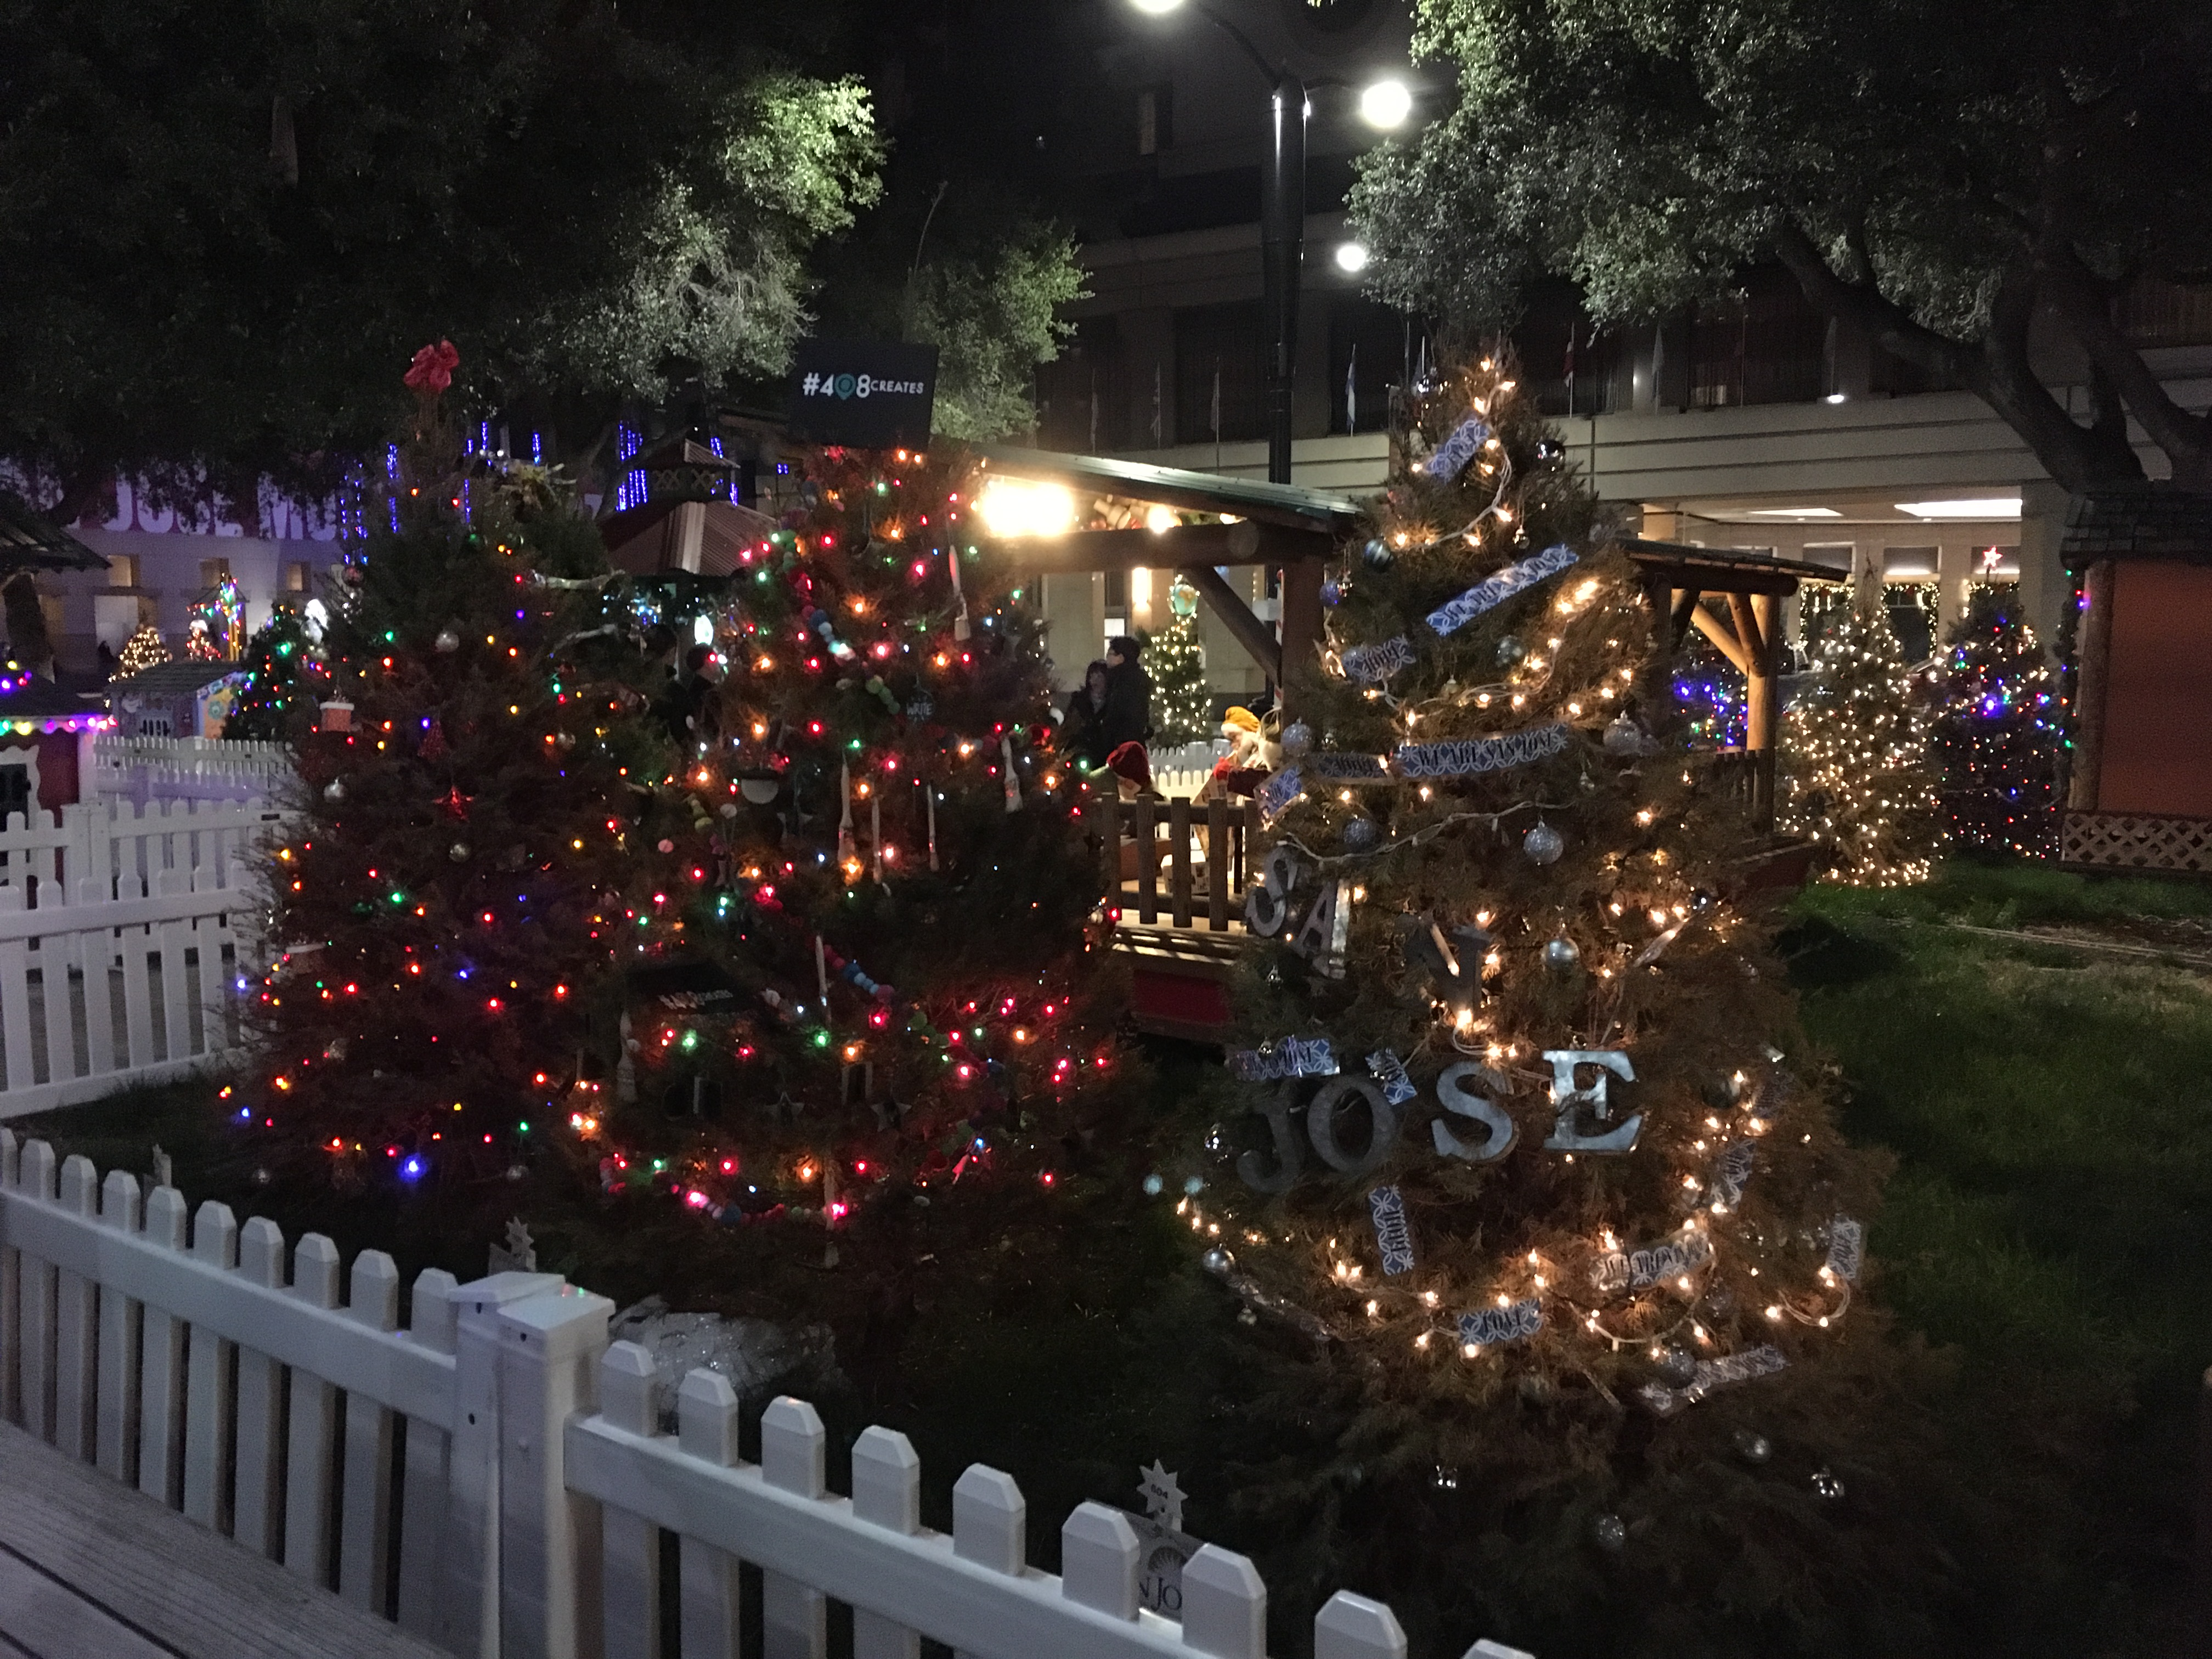 filechristmas in the park 5 2016 12 30jpg - When Does Christmas In The Park Open